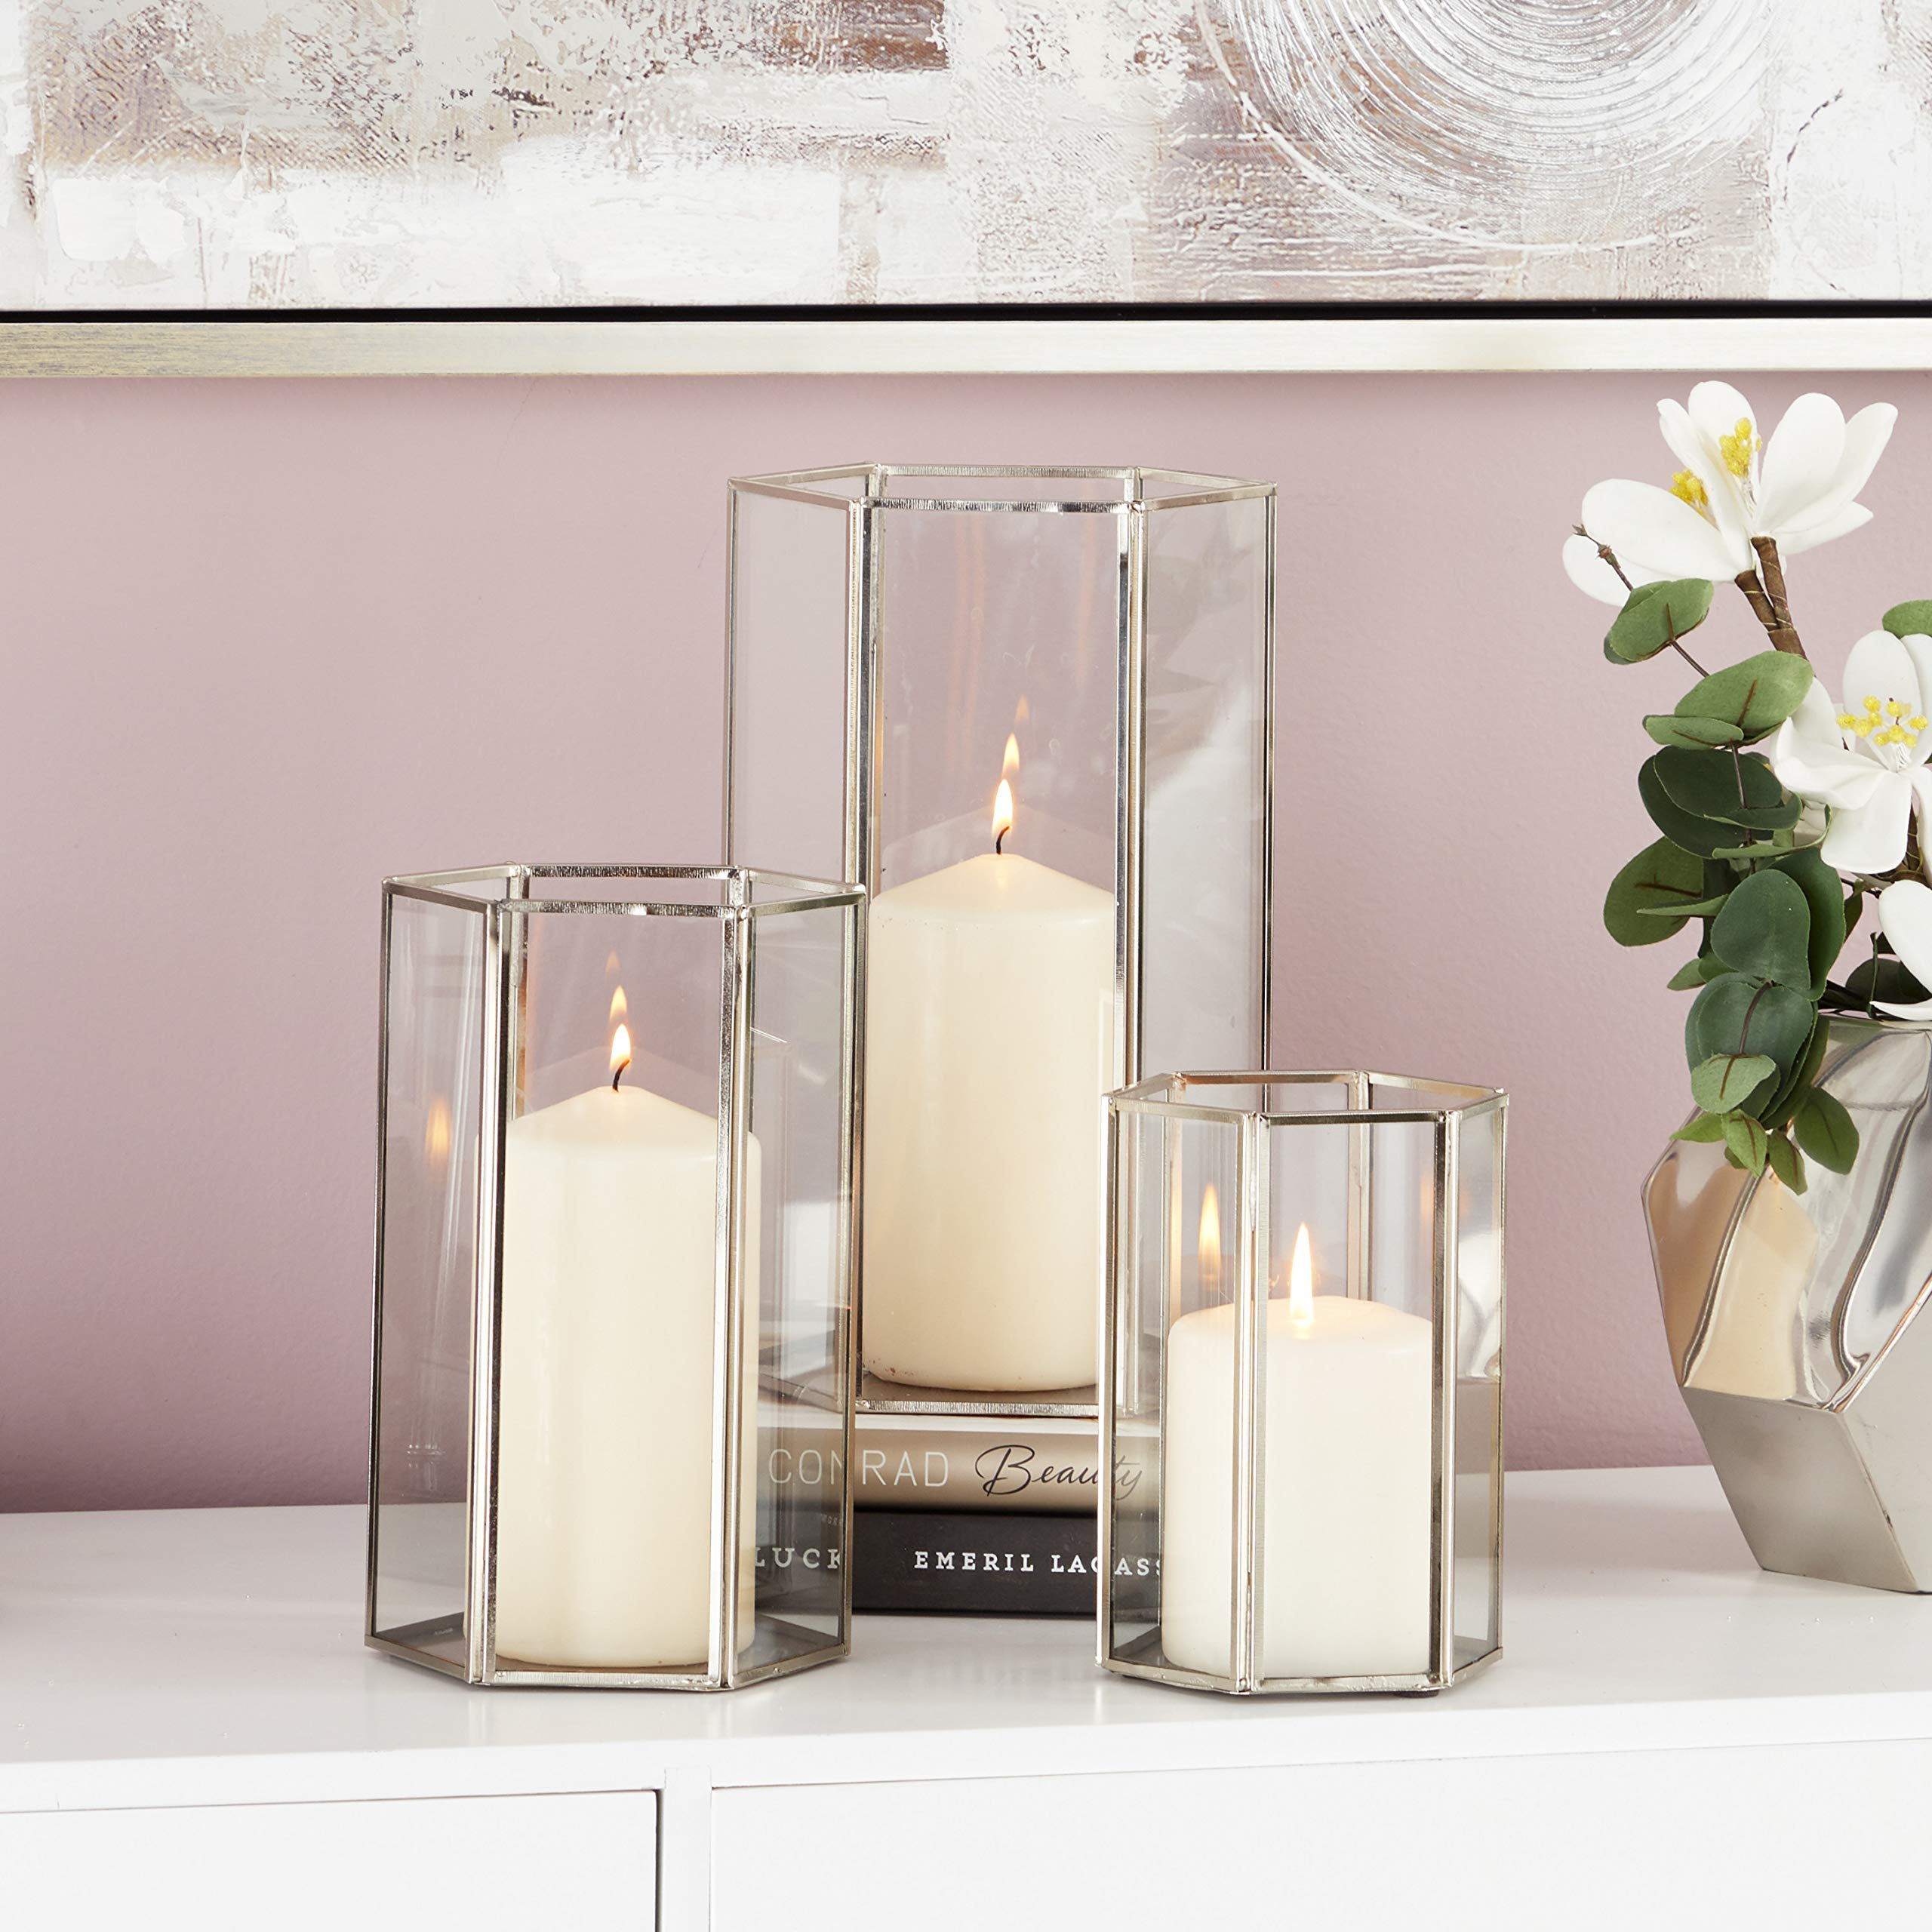 CosmoLiving by Cosmopolitan 57379 Hexagonal-Prism Iron Candle Holders (Set of 3), 6'' x 8'' x 10'', Silver/Clear